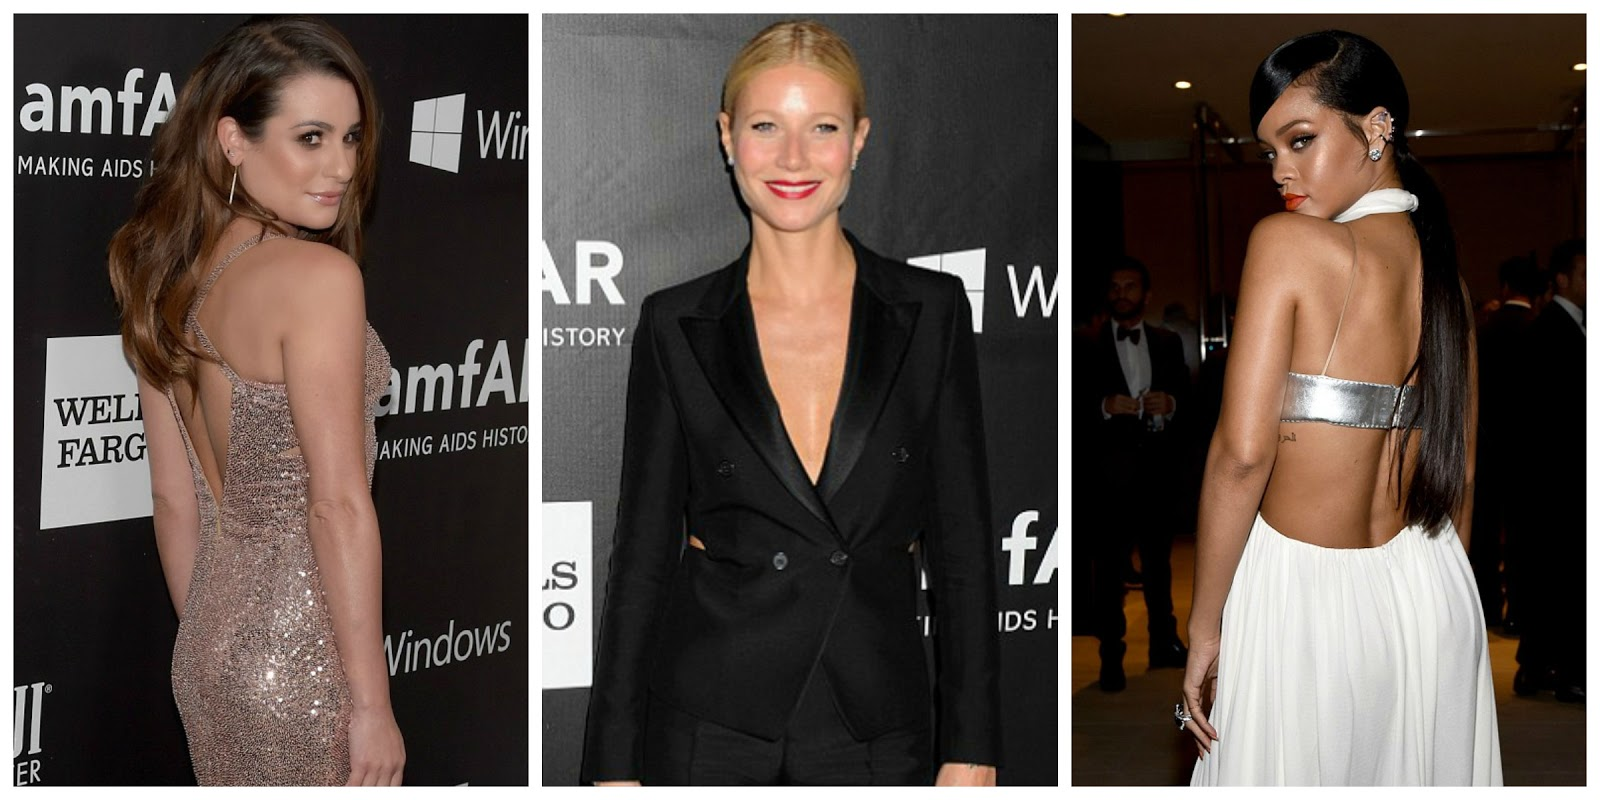 amfAR Gala (Aids Research Foundation) Best Looks